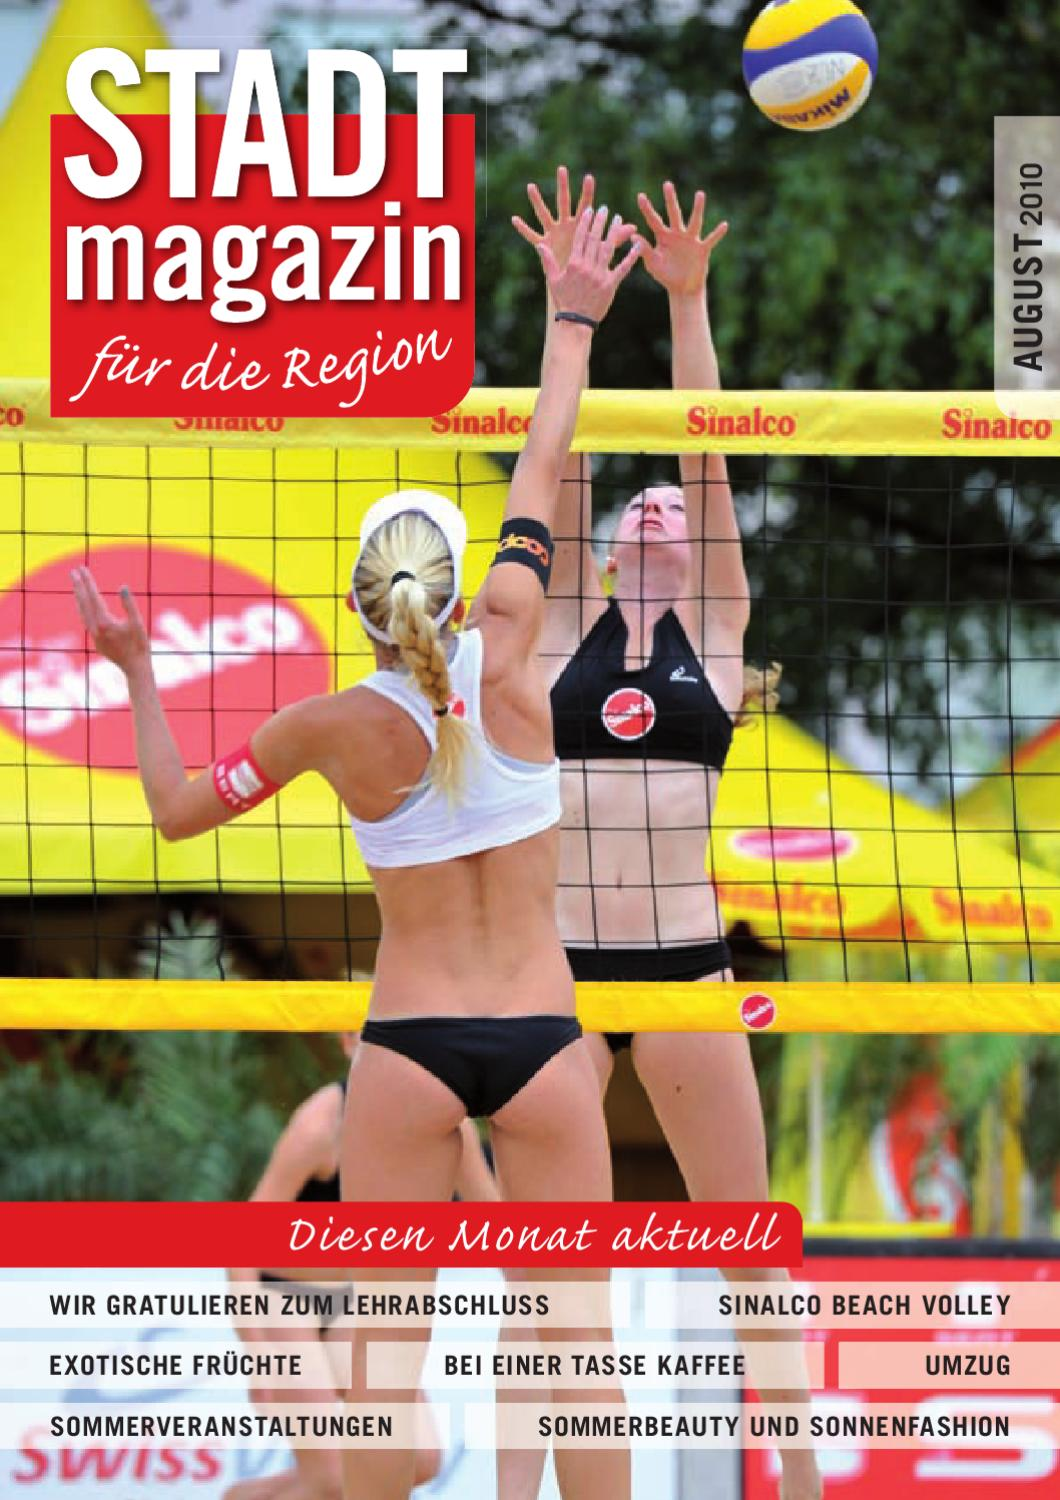 STADTmagazin August 2010 by inpuncto Verlag issuu